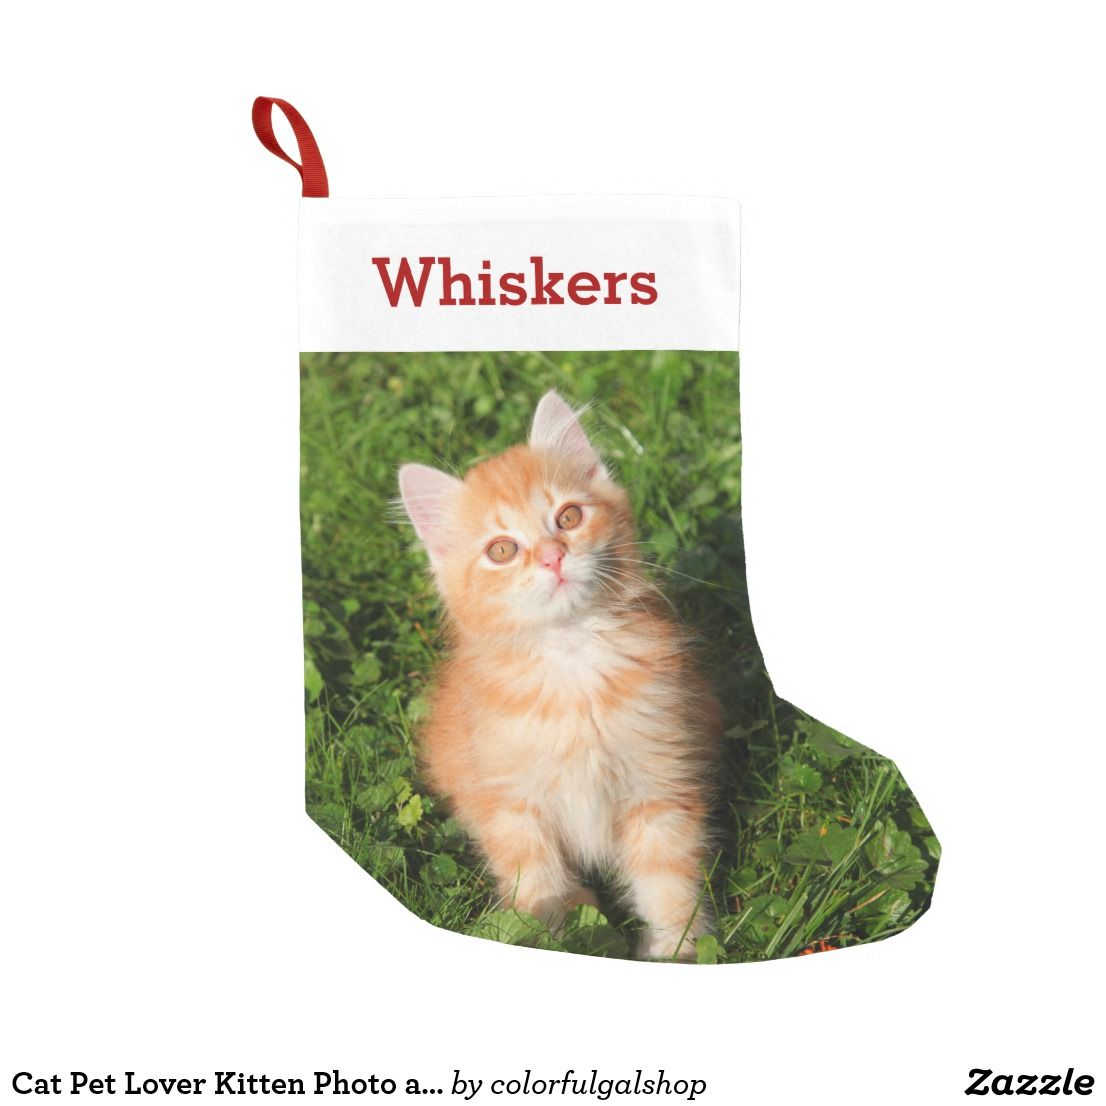 Cat Pet Lover Kitten Photo And Name Personalized Small Christmas Stocking Zazzle Com Kitten Photos Small Christmas Stockings Pet Christmas Stockings